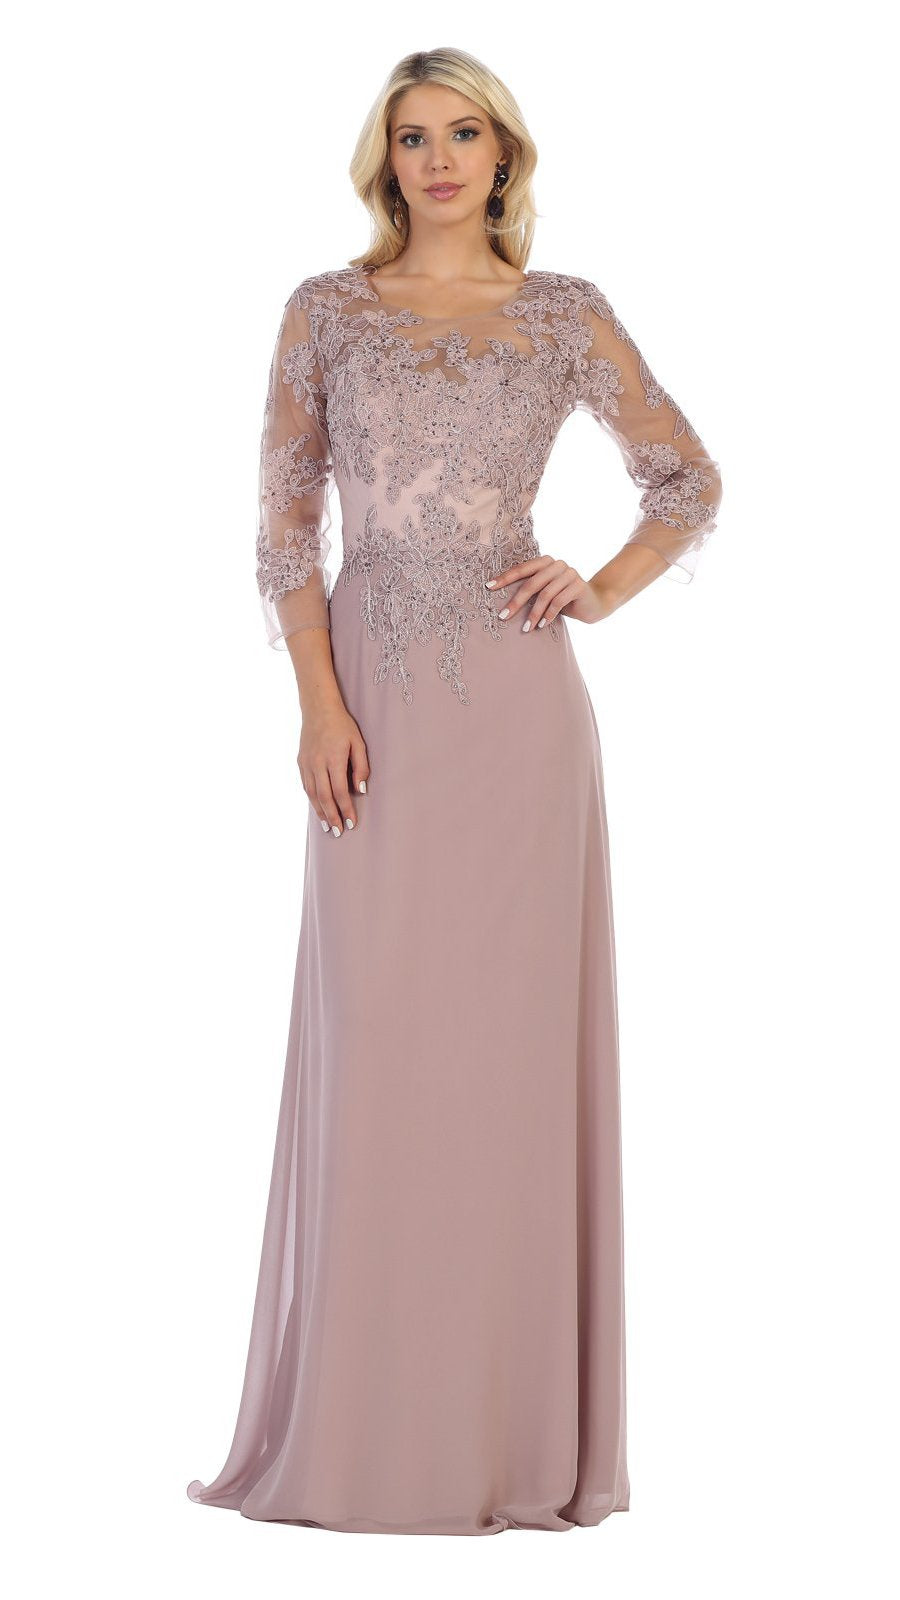 May Queen - MQ1637SC Beaded Appliqued Quarter Sleeve Long Dress